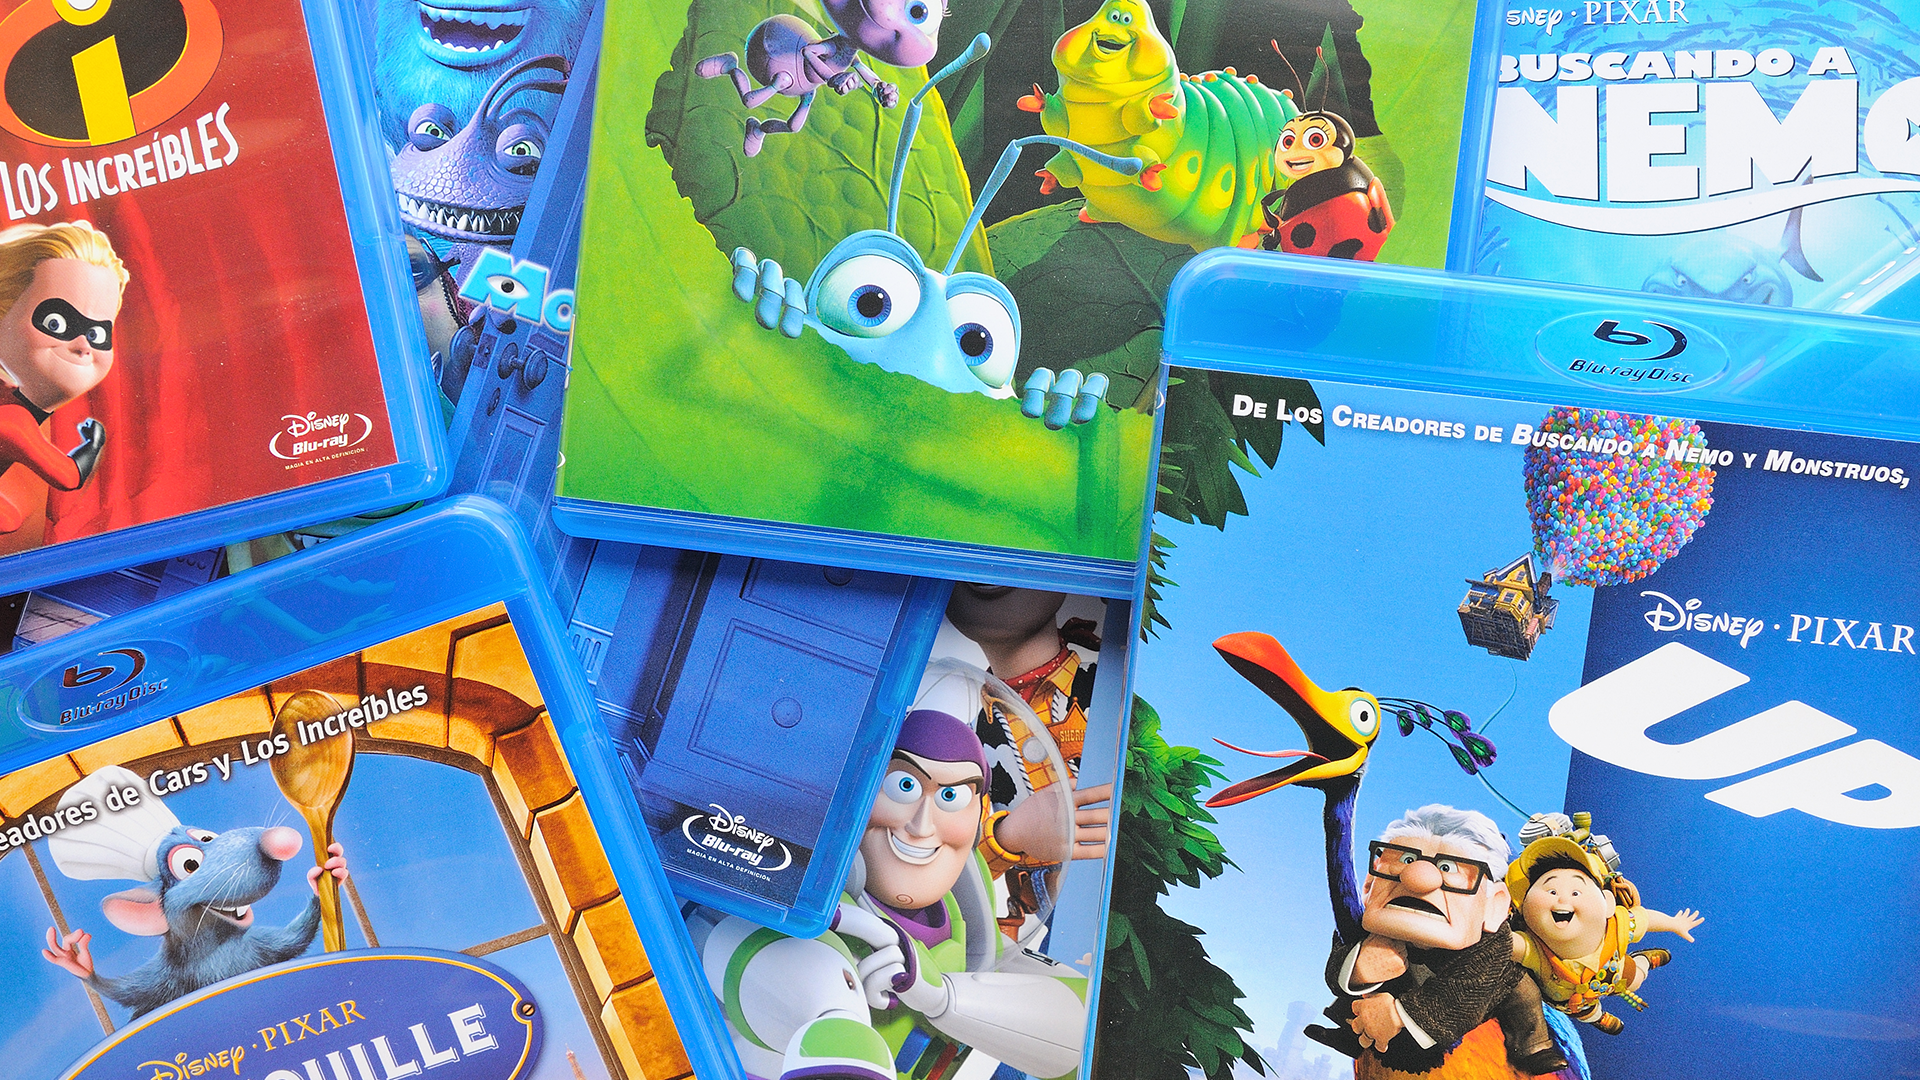 """A messy pile of Disney Blu-rays, including """"Up,"""" """"Bugs,"""" """"Finding Nemo,"""" """"Toy Story,"""" and """"Ratatouille."""""""